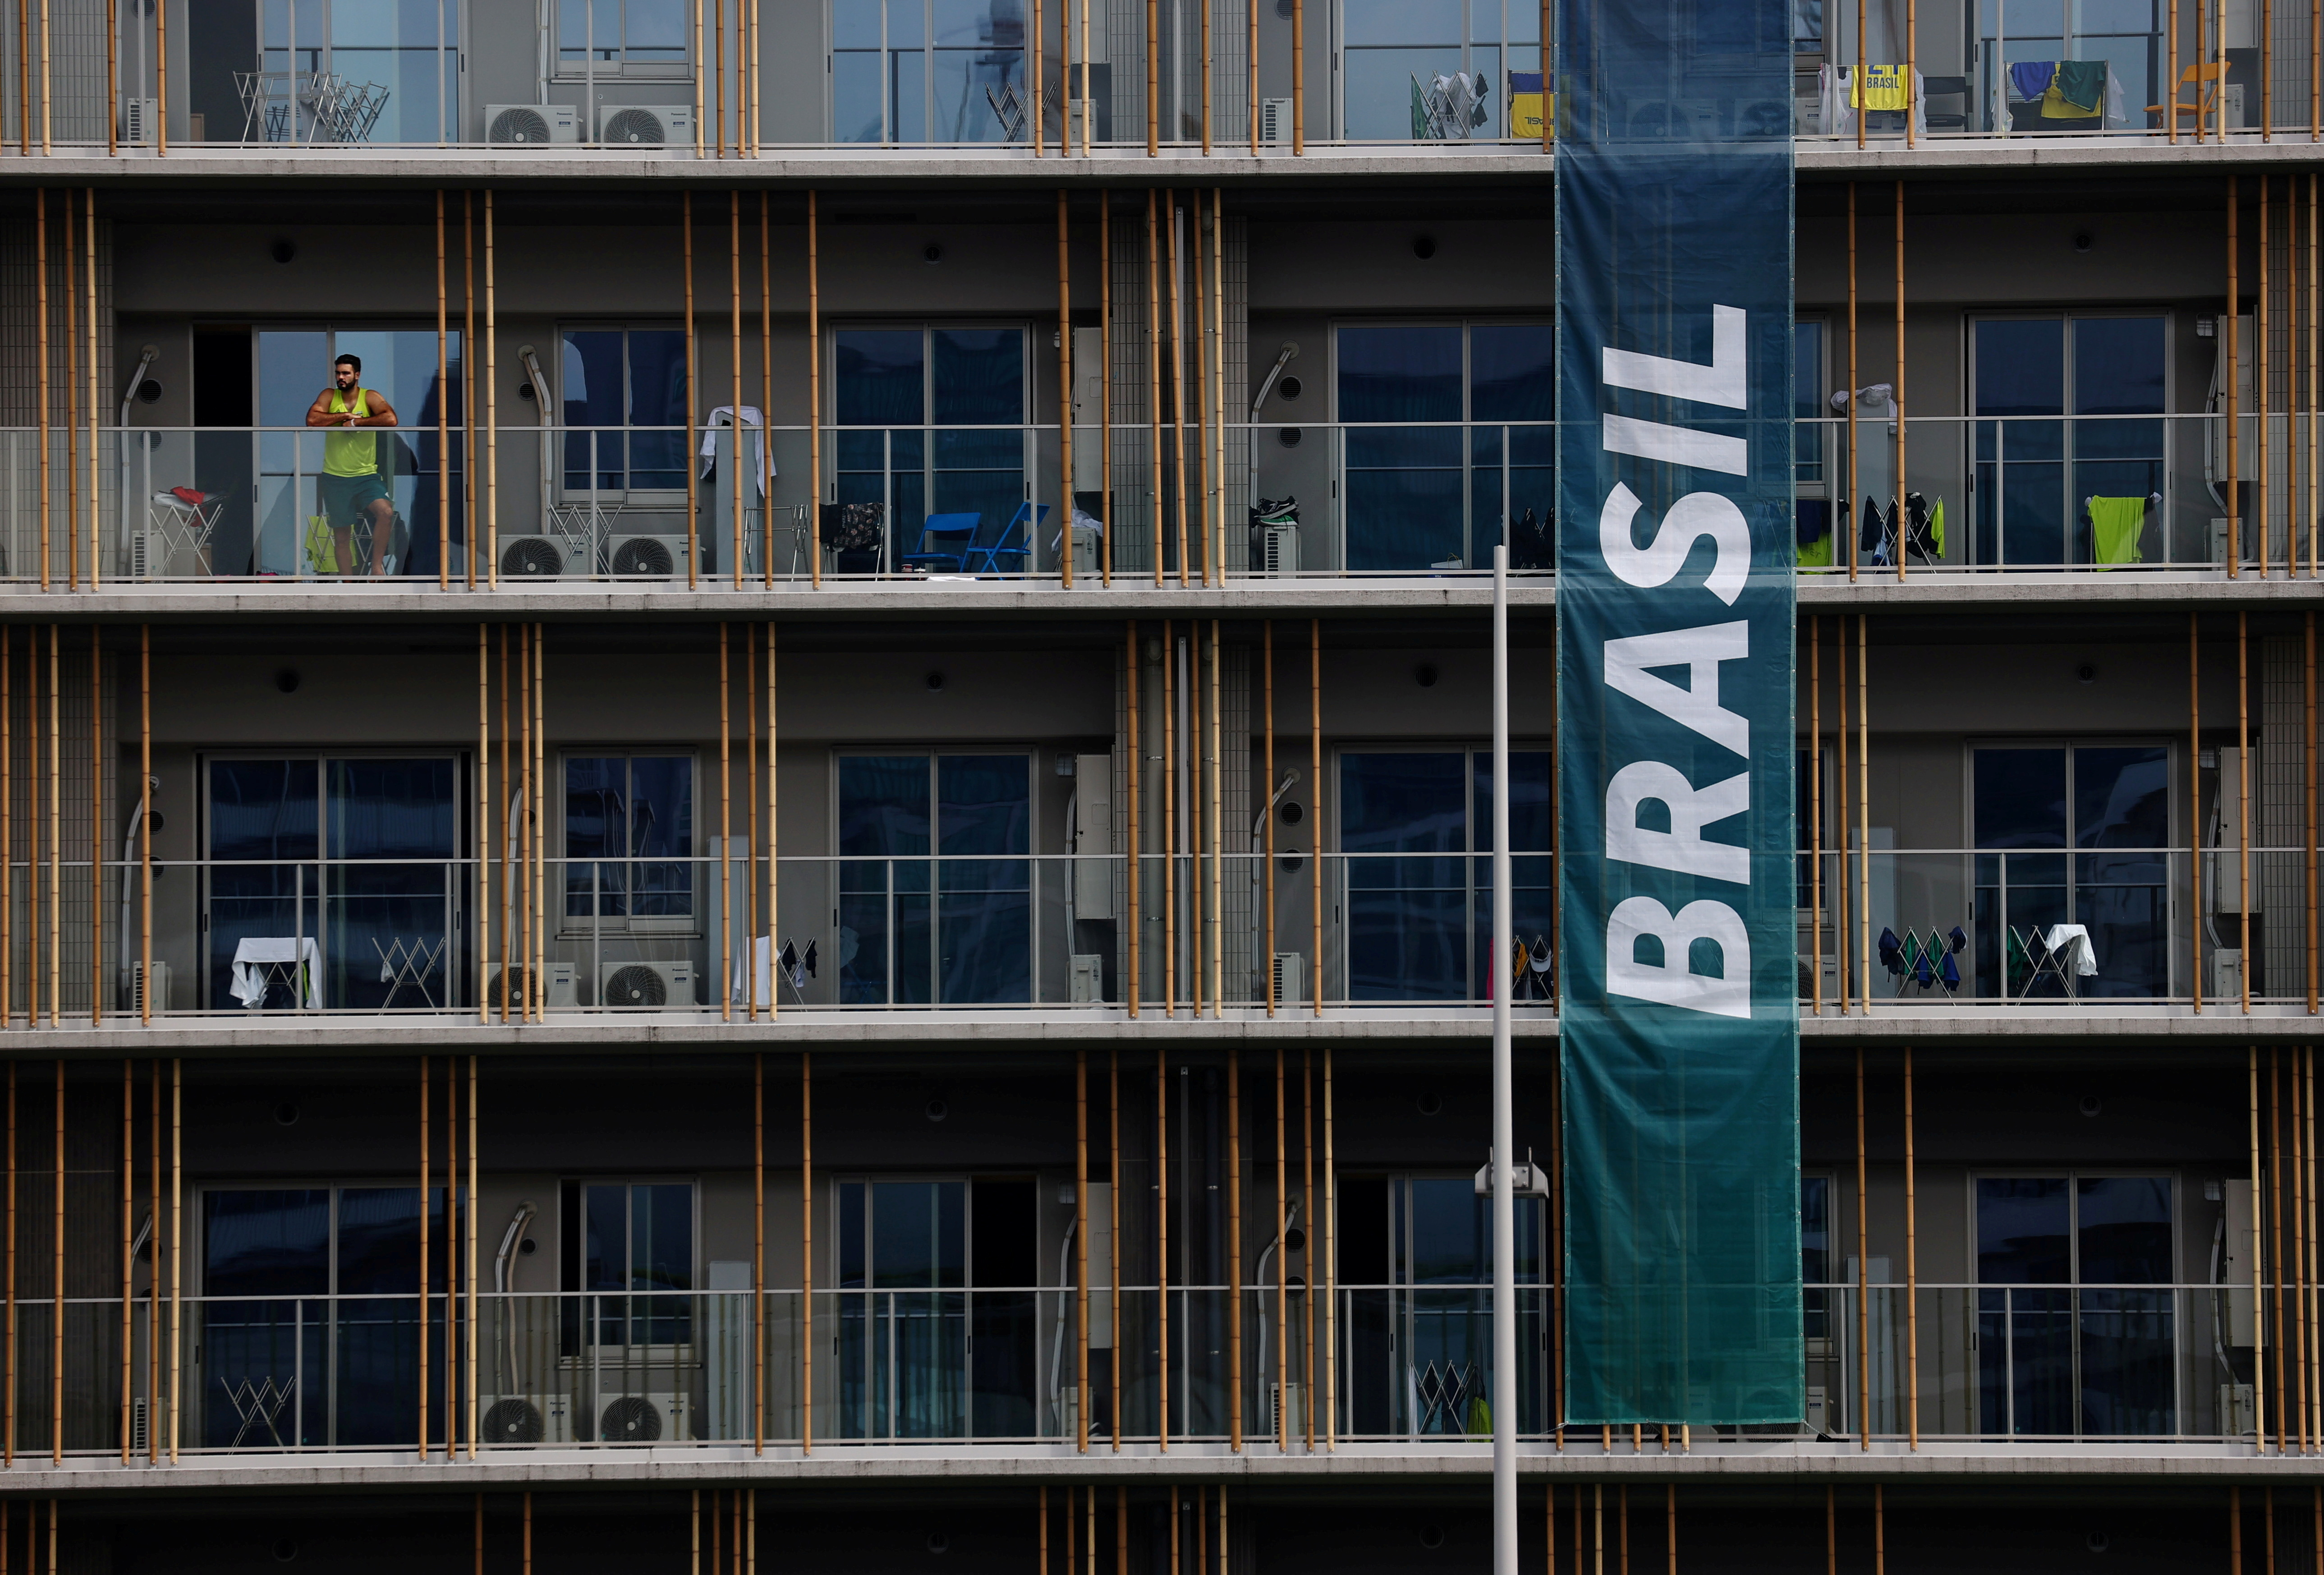 A man stands on a balcony at the athletes' village for Tokyo 2020 Olympic Games in Tokyo, Japan, July 29, 2021.   REUTERS/Kim Kyung-Hoon